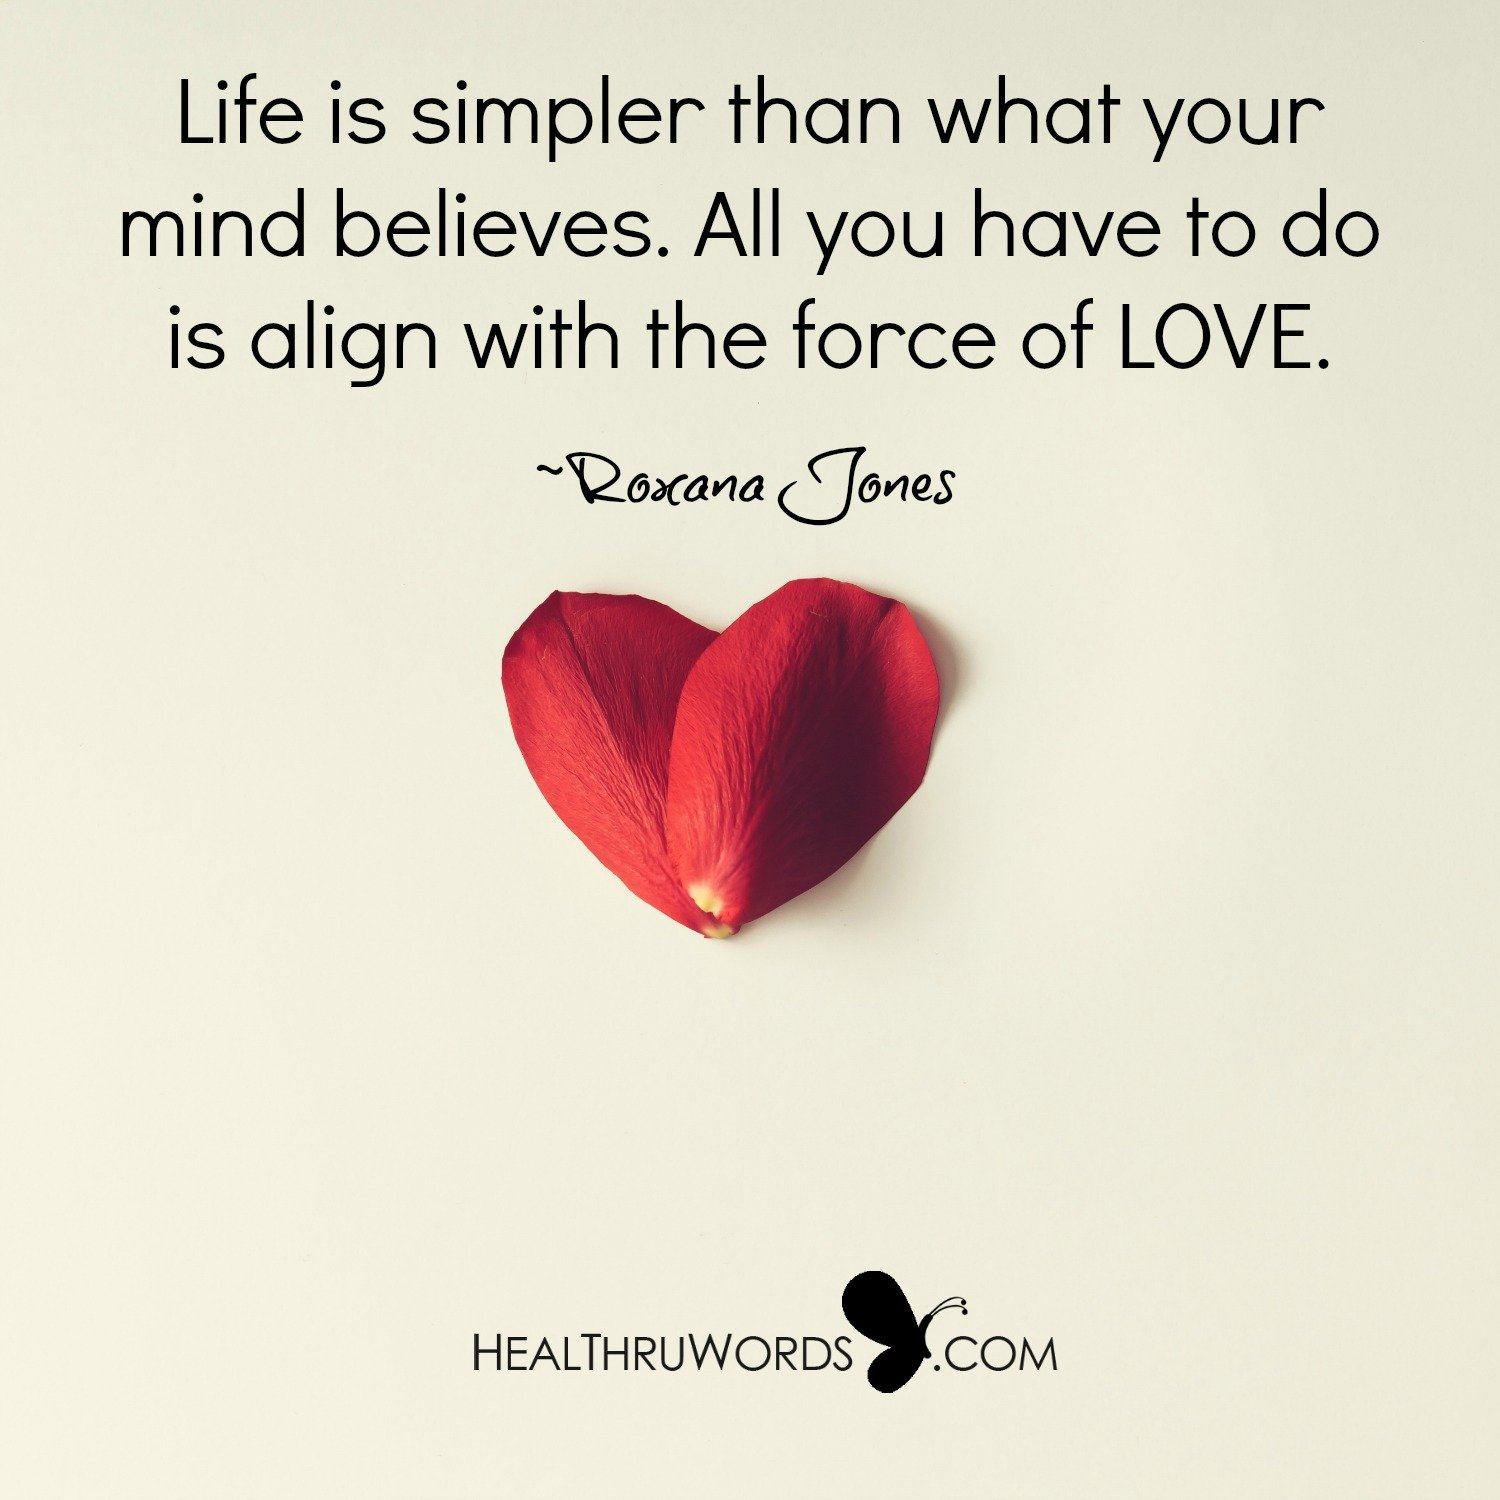 Inspirational Image: Aligning with Love